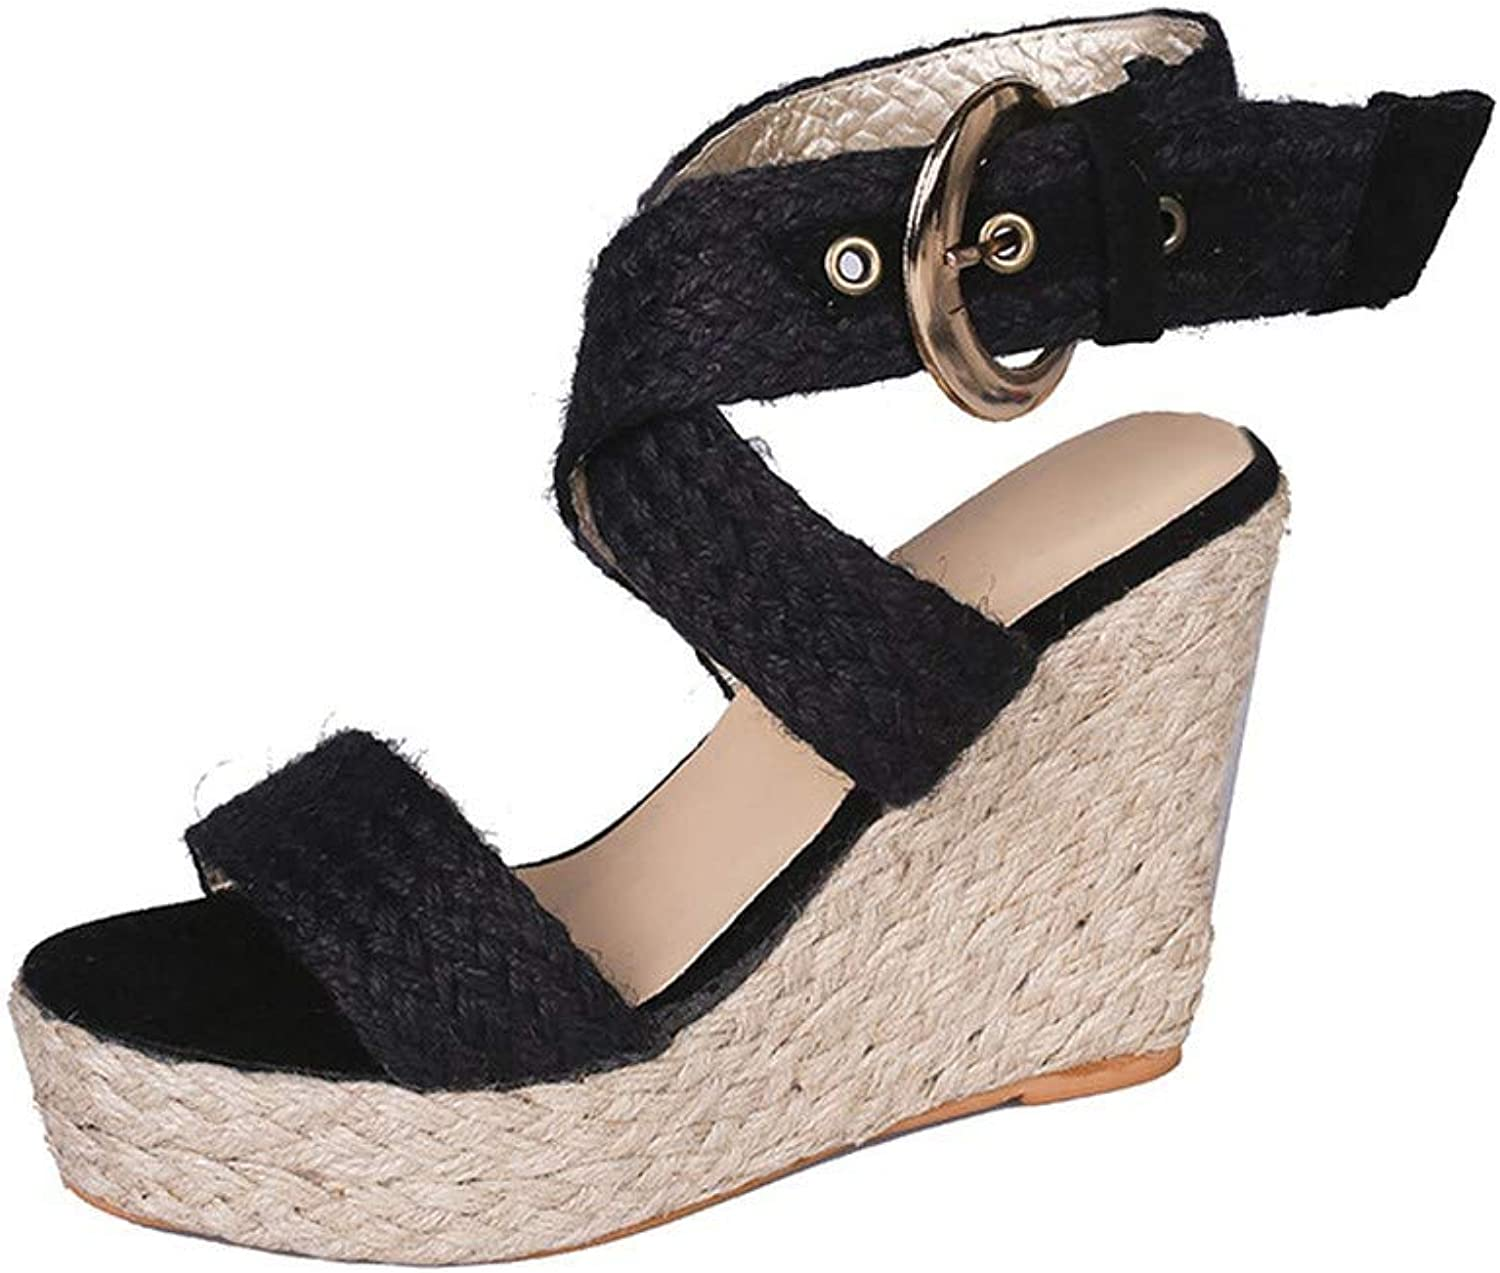 Colourtouch Womens Strappy Espadrille Platform Wedge Sandals Open Toe Slingback Mid Heel Summer Sandals Pink